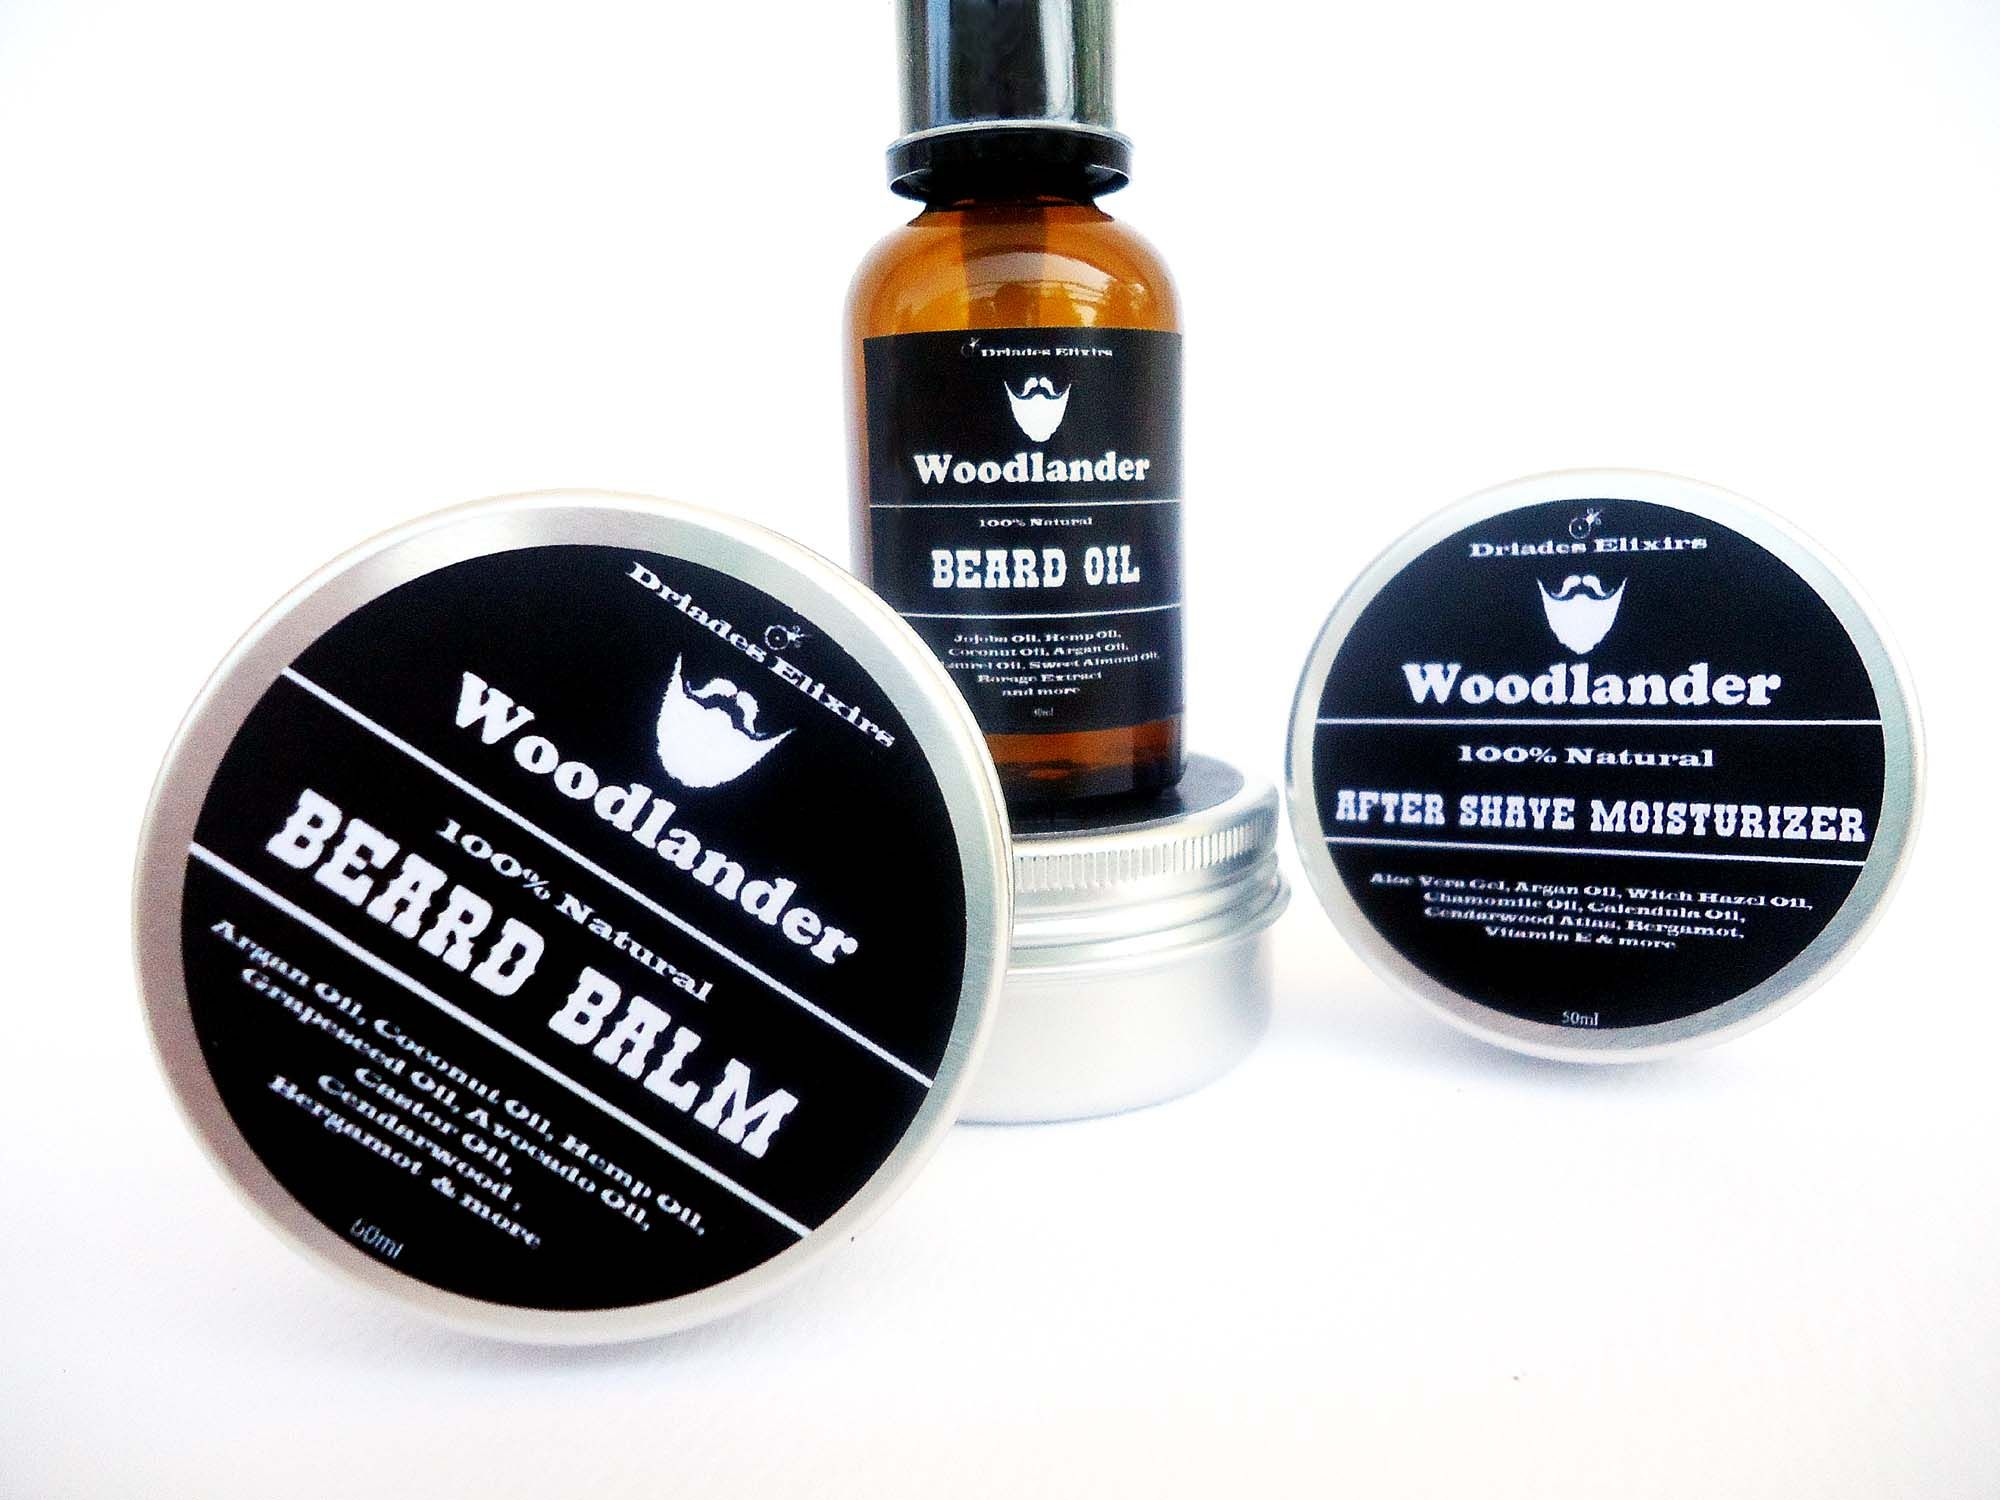 Best Skin Care Products For Men All Natural Zero Waste Vegan And Handmade To Order By D Cheap Skin Care Products Facial Skin Care Facial Skin Care Routine